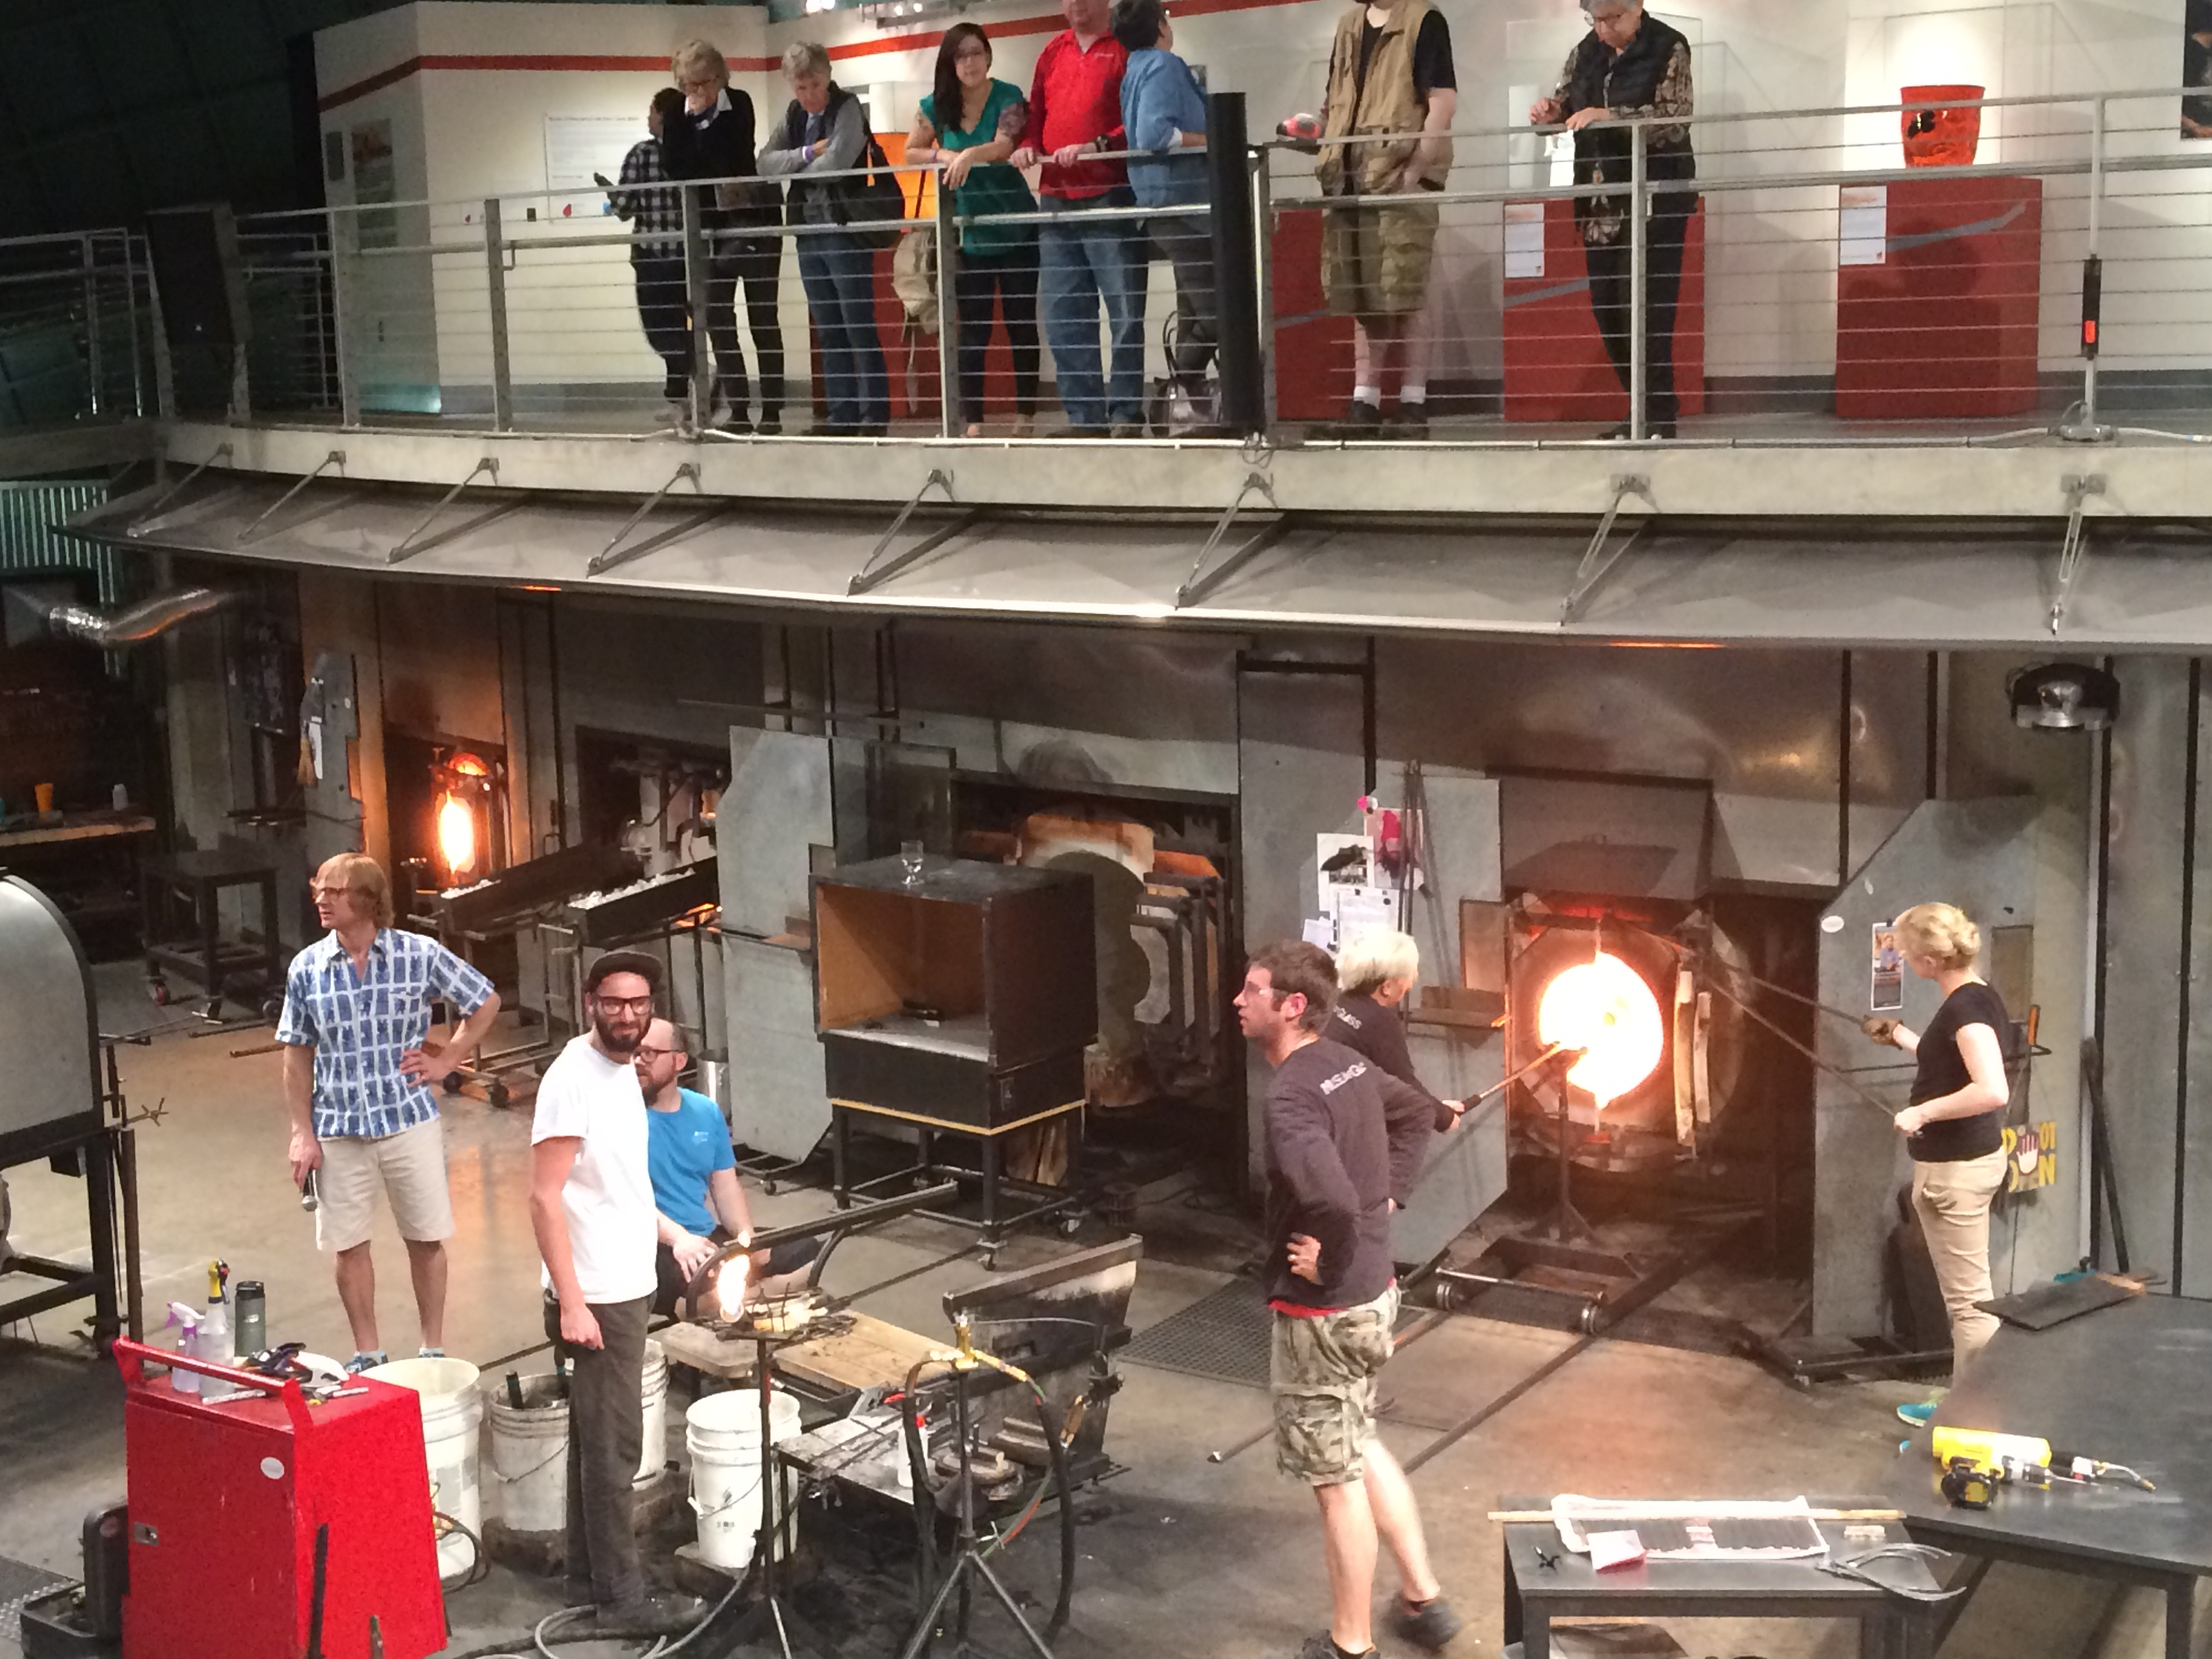 Getting up close with the glass blowers